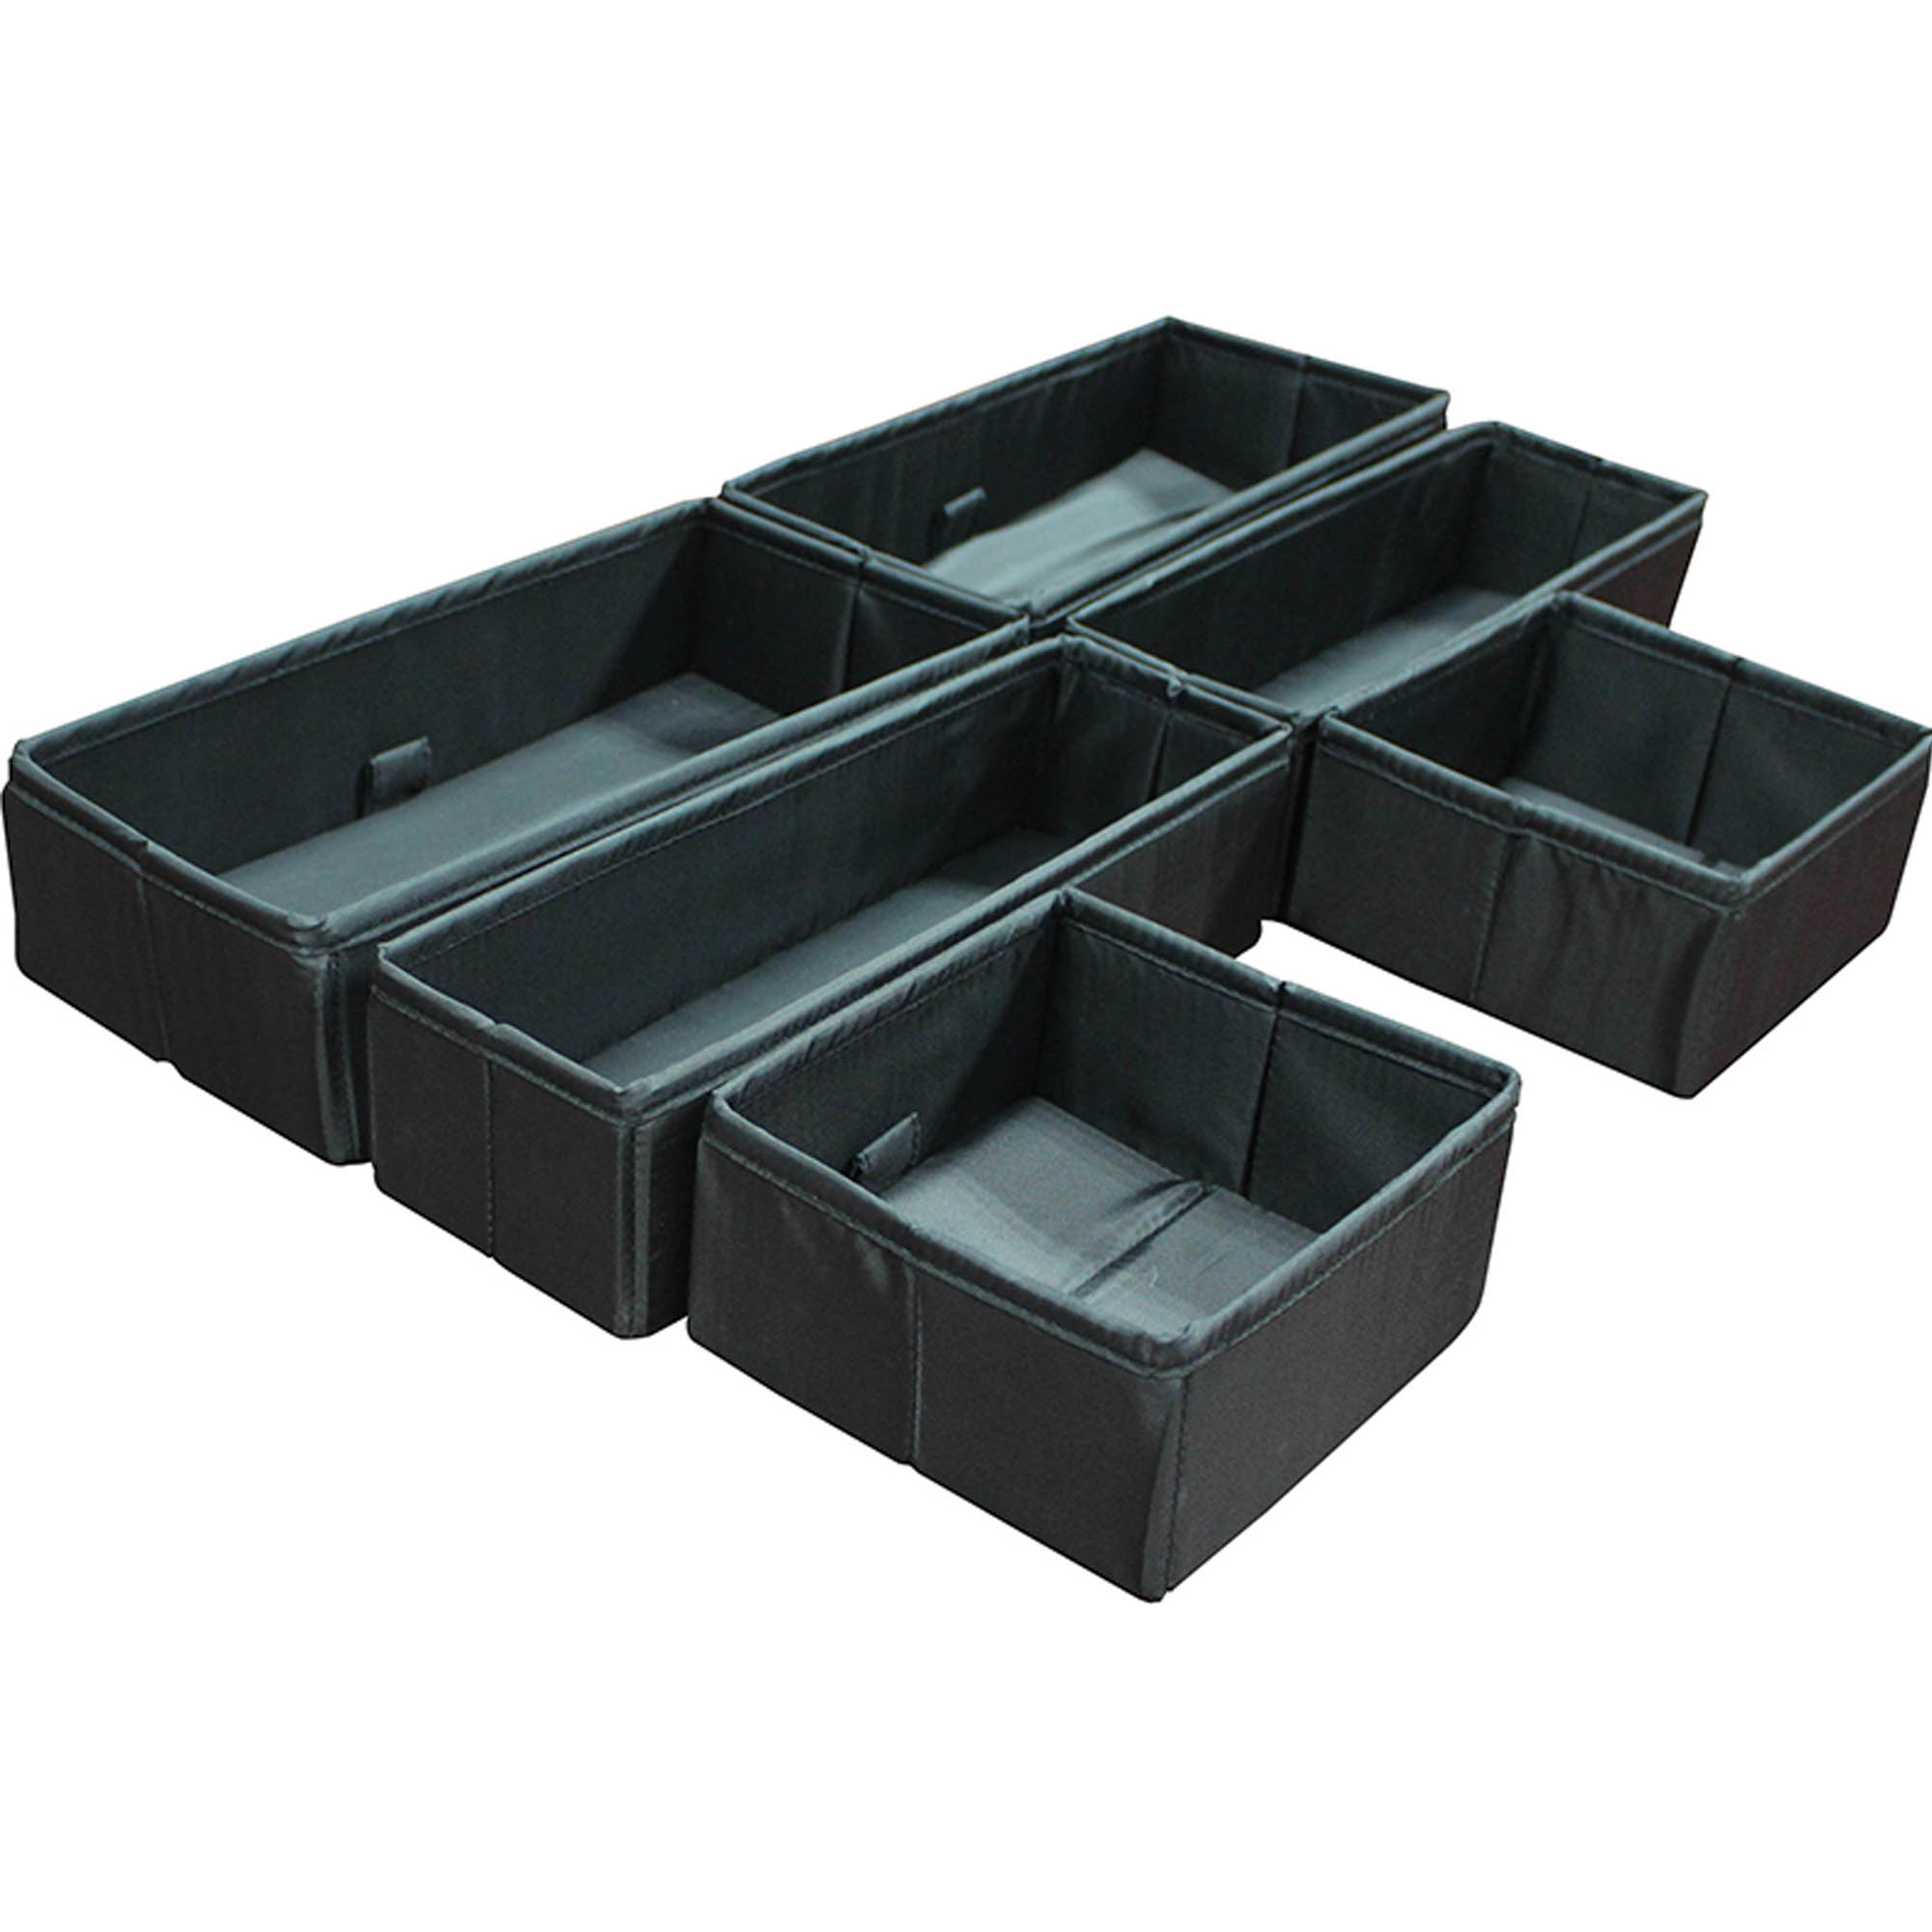 Mainstays Drawer Organizer Set 6 piece